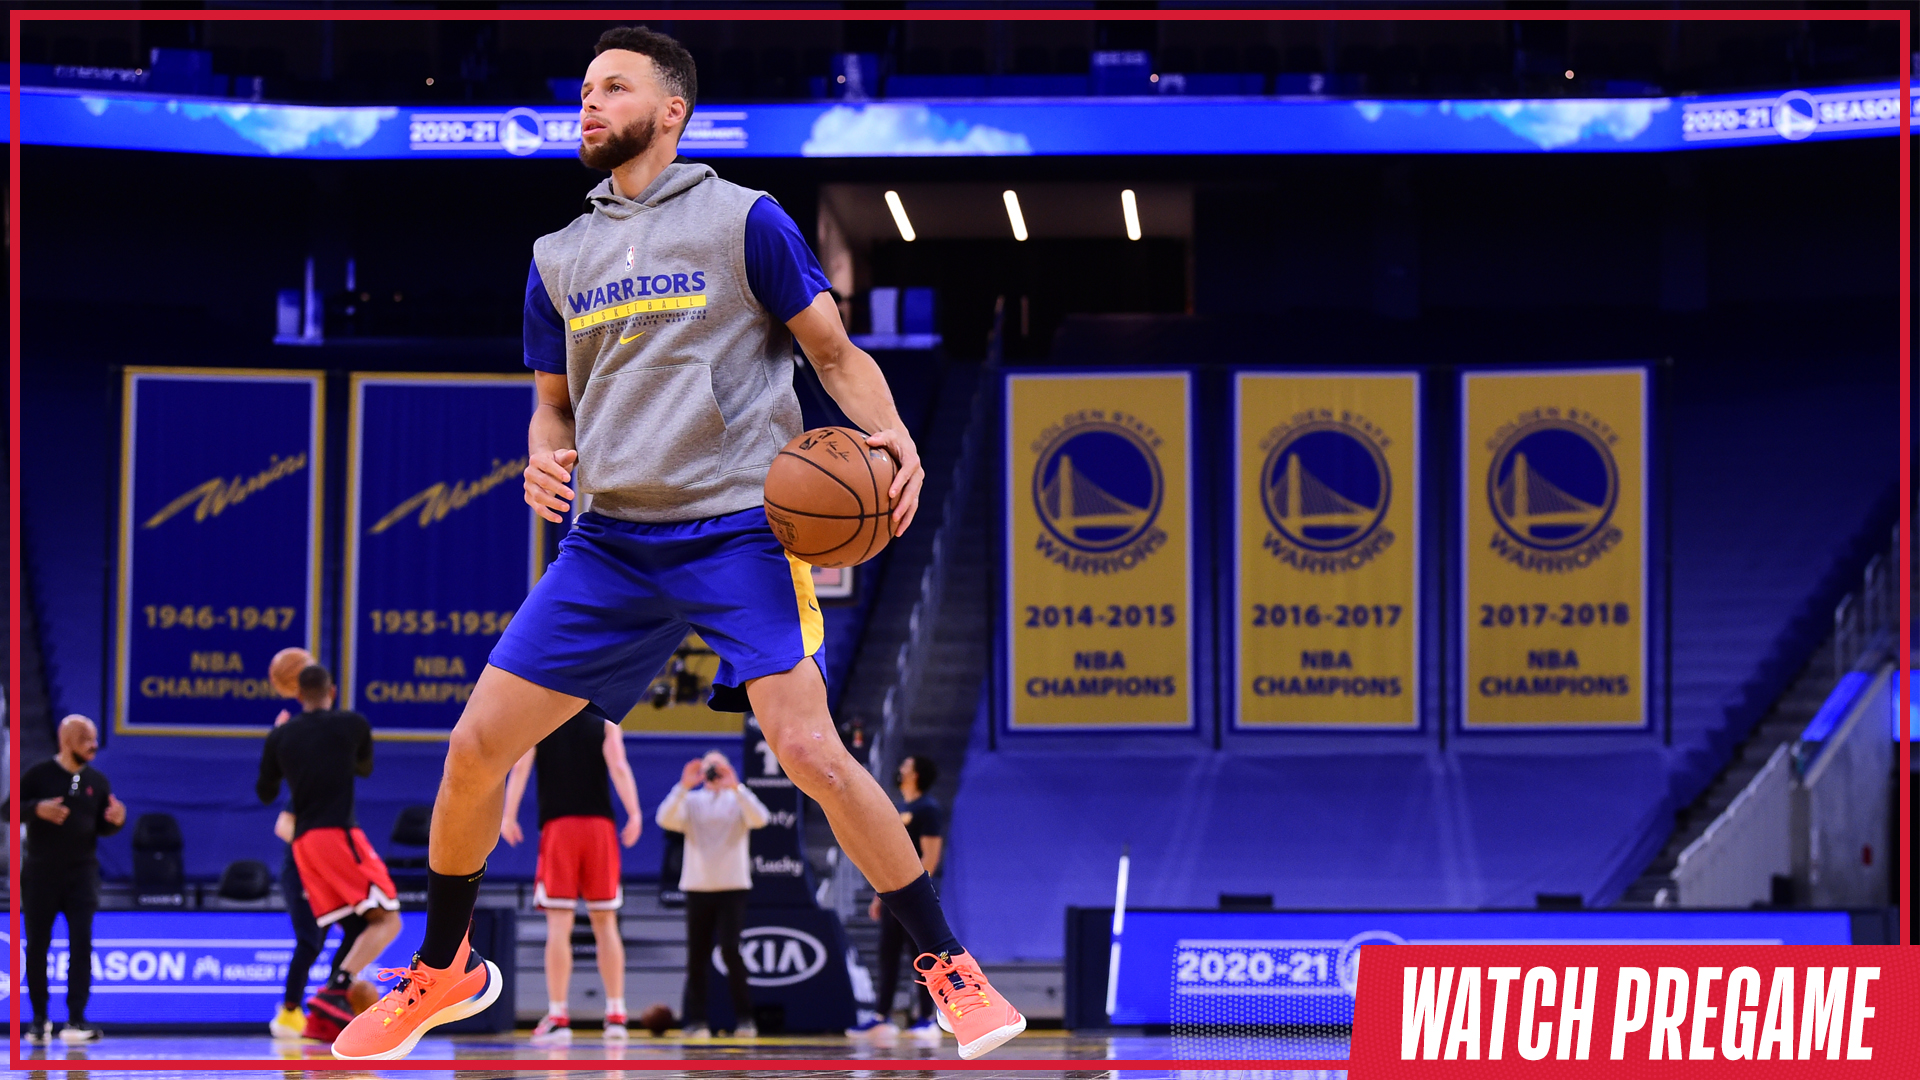 Watch Free: Warriors vs. Thunder Pregame